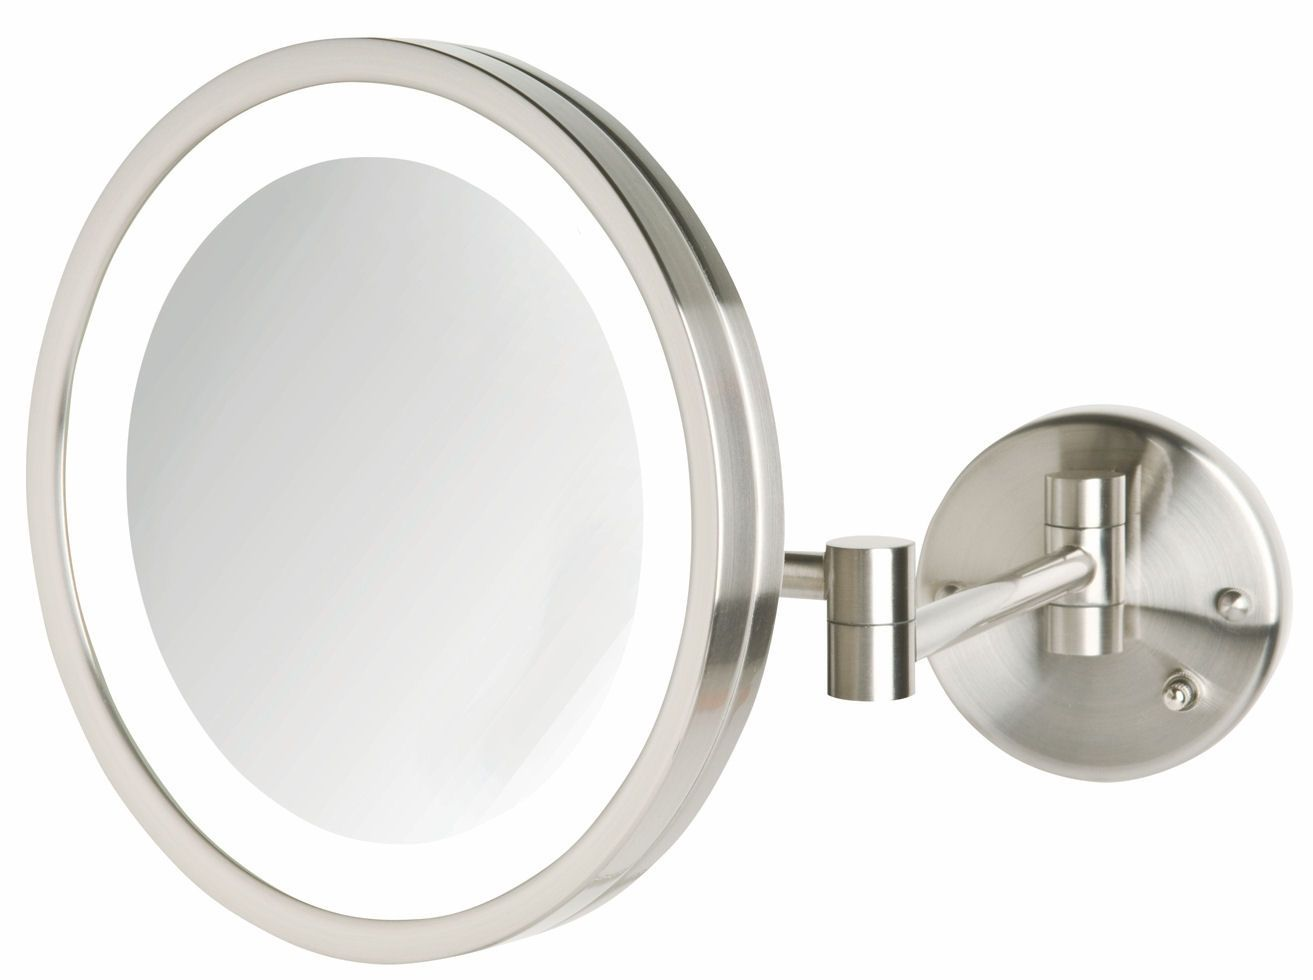 Wall Mounted Illuminated Magnifying Mirror Wall Mounted Makeup Mirror Wall Mounted Lighted Makeup Mirror Wall Mounted Magnifying Mirror